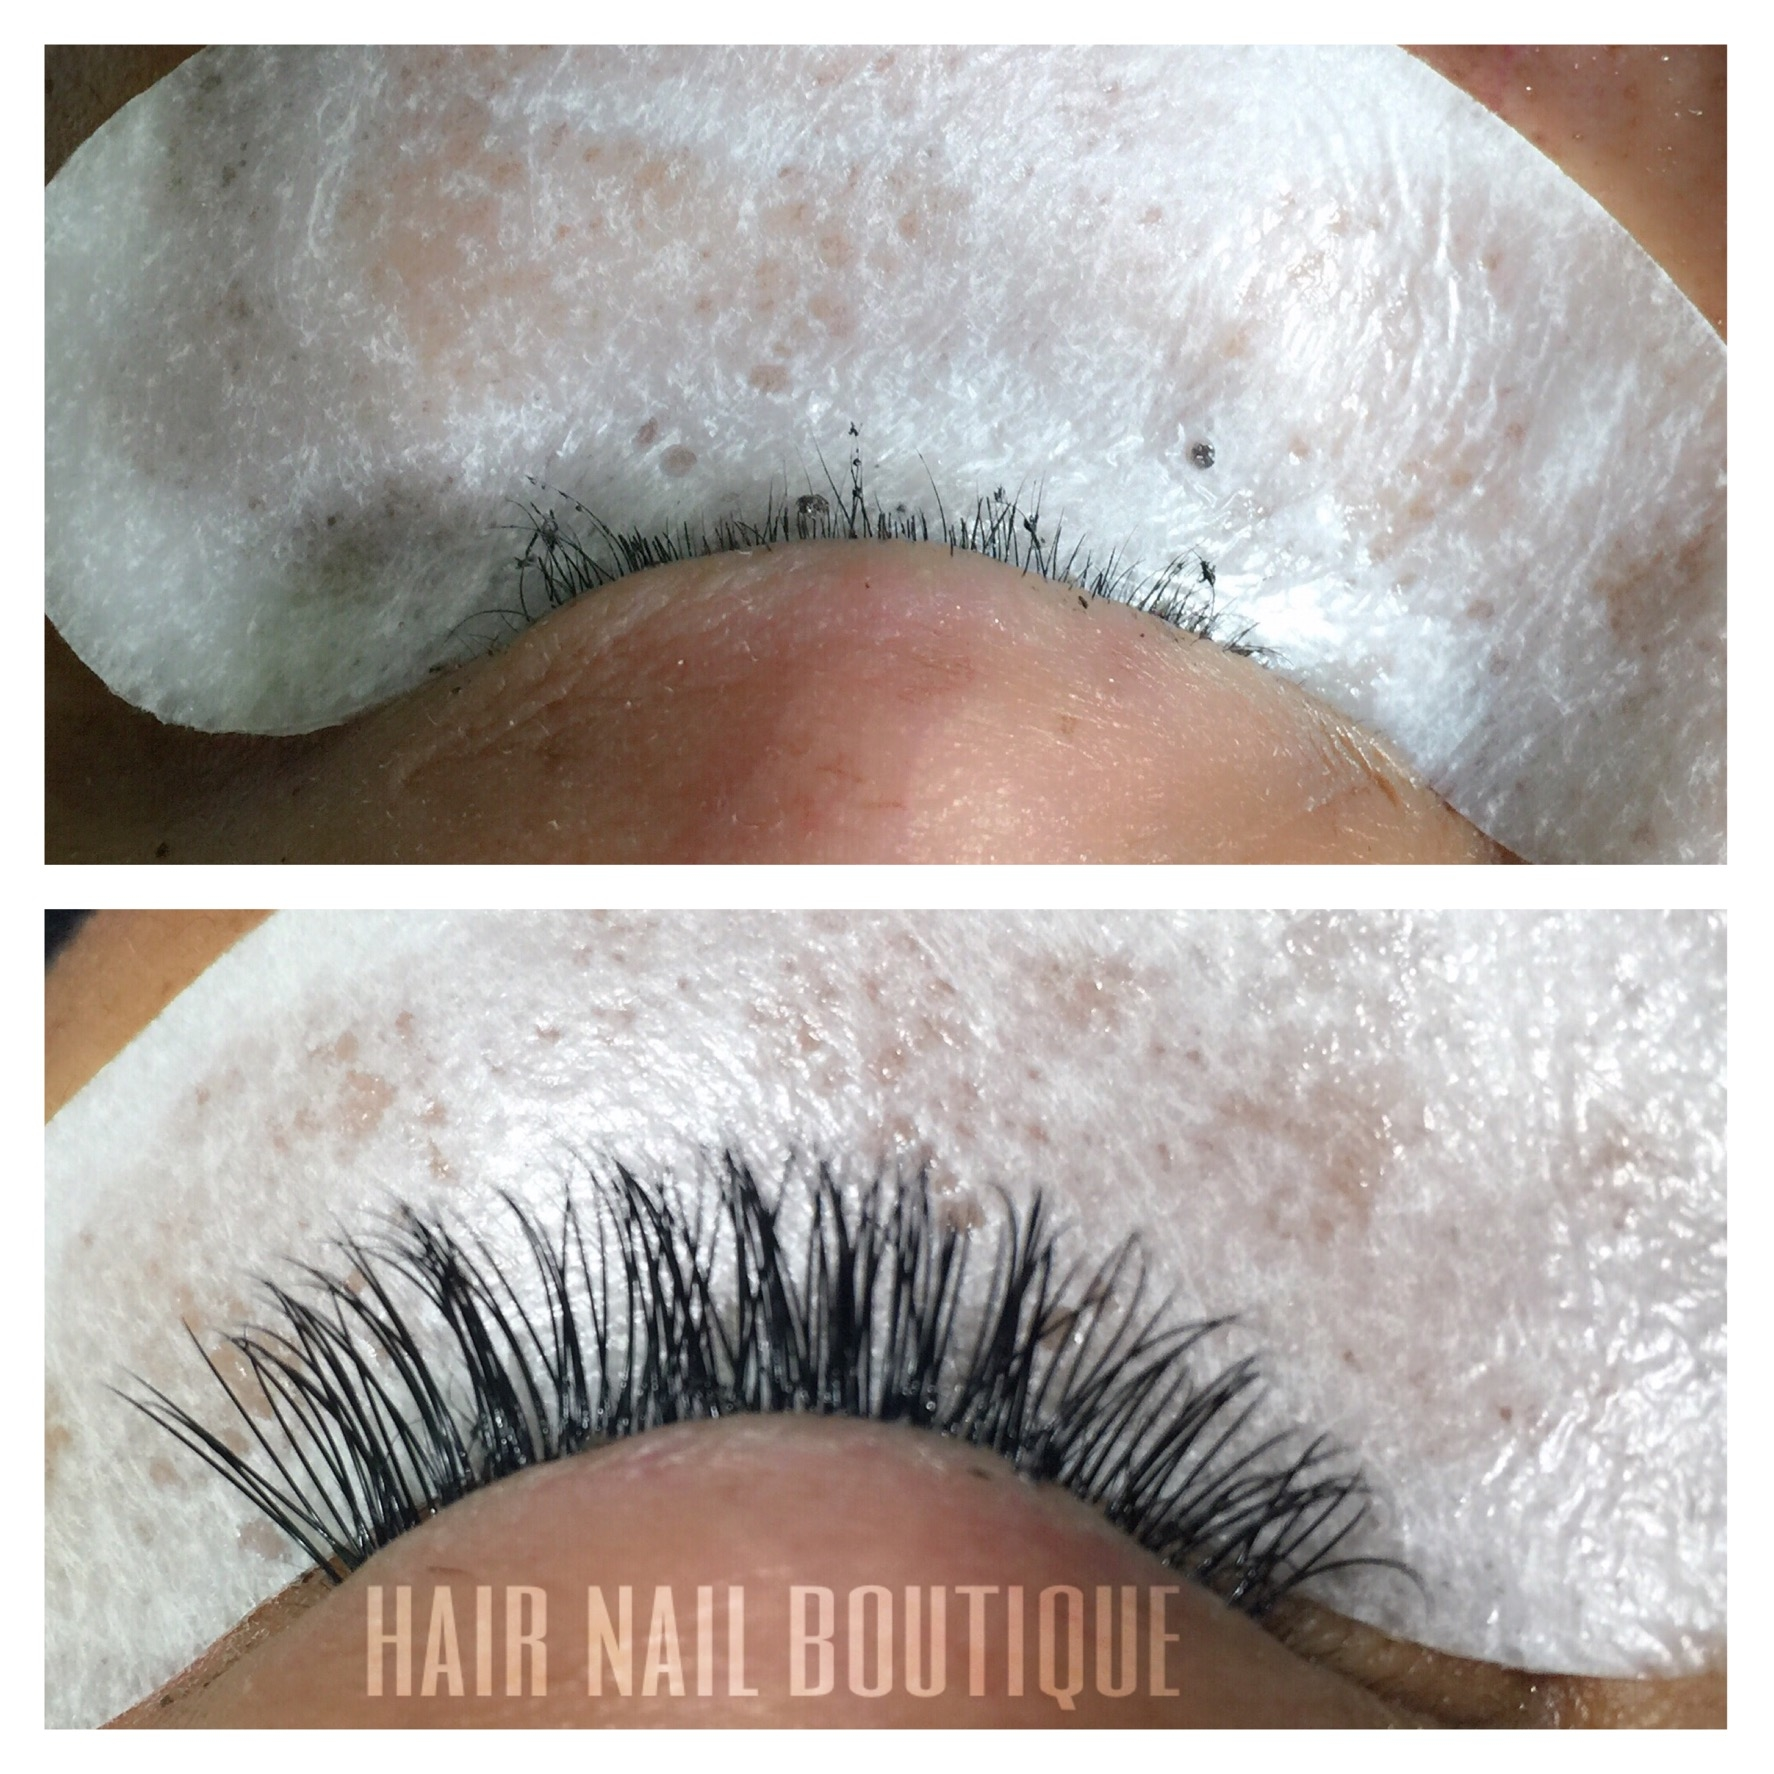 Hair nail boutique coupons near me in falls church 8coupons for 24 hour nail salon los angeles